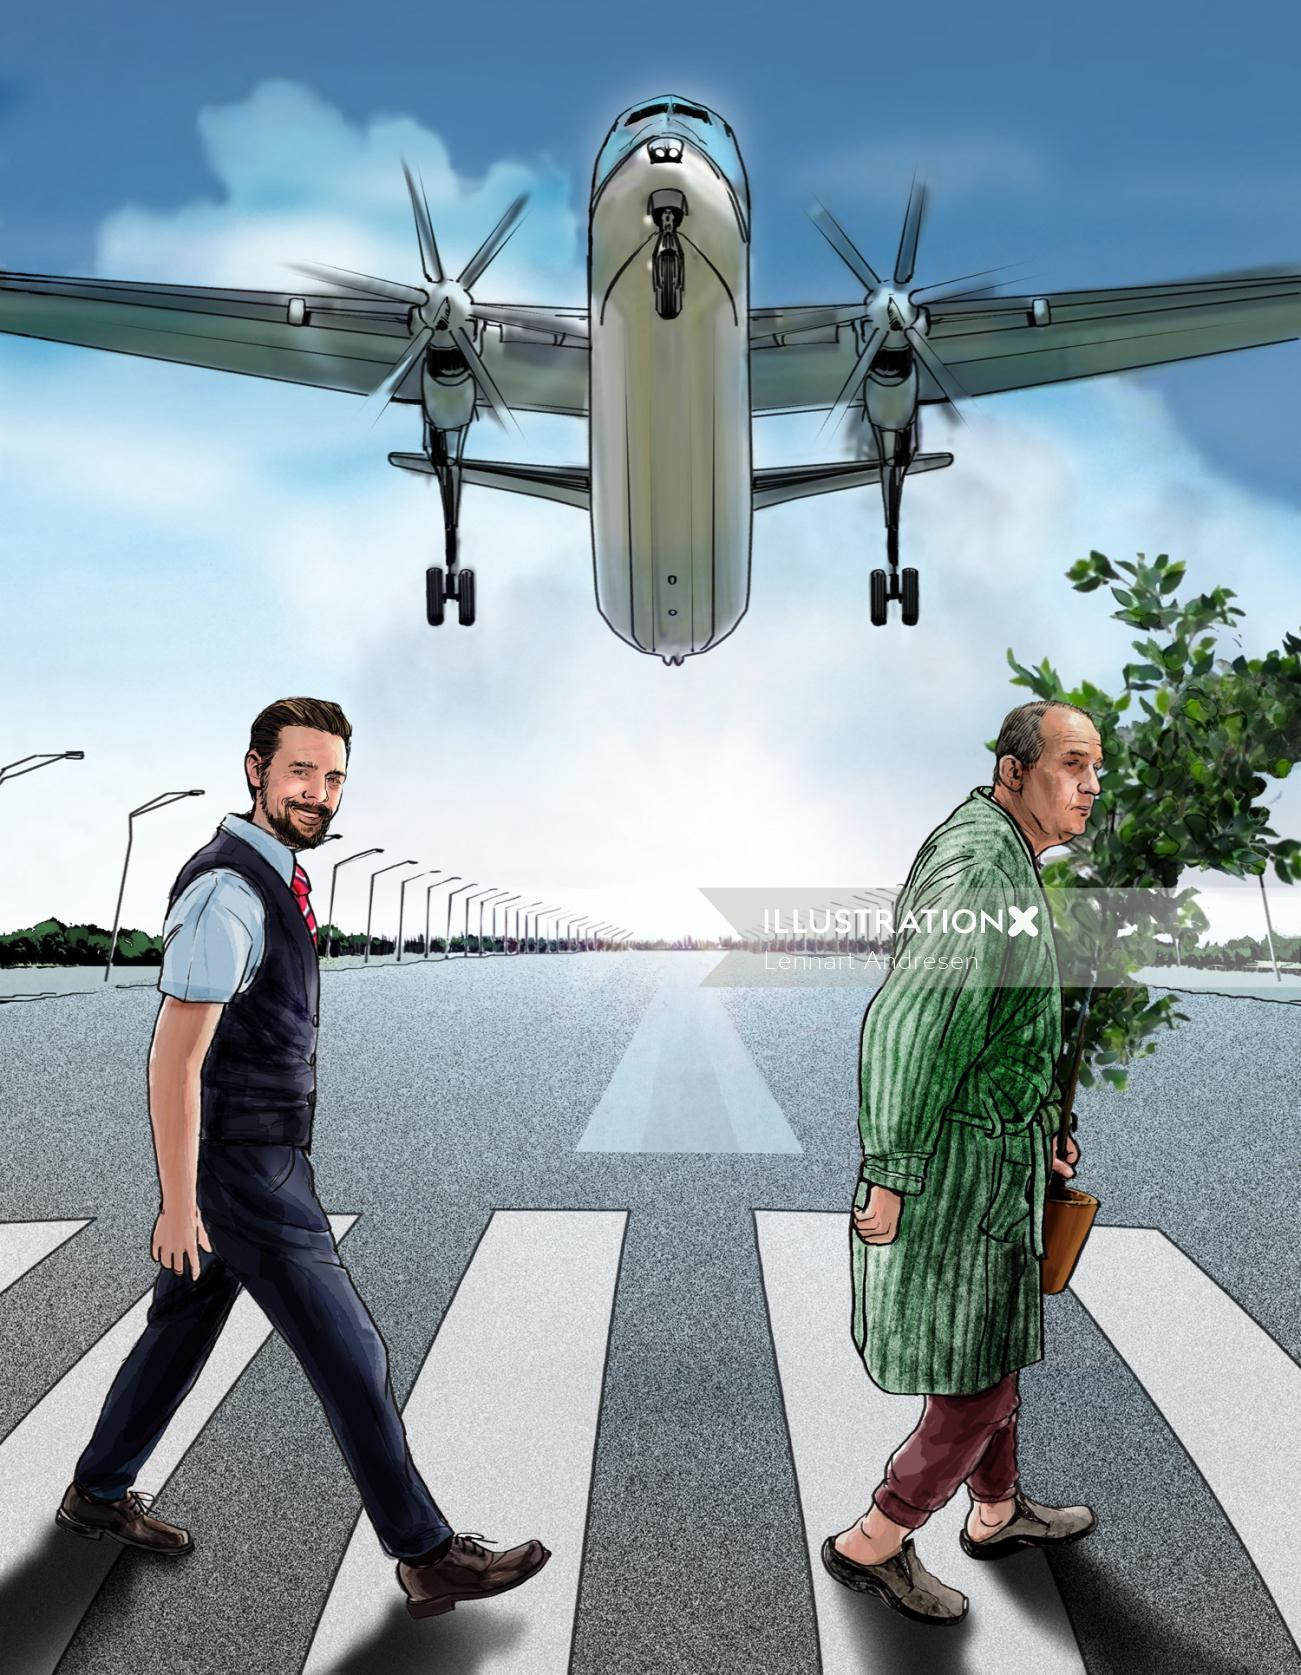 Illustration of people crossing zebra lines with flying plane